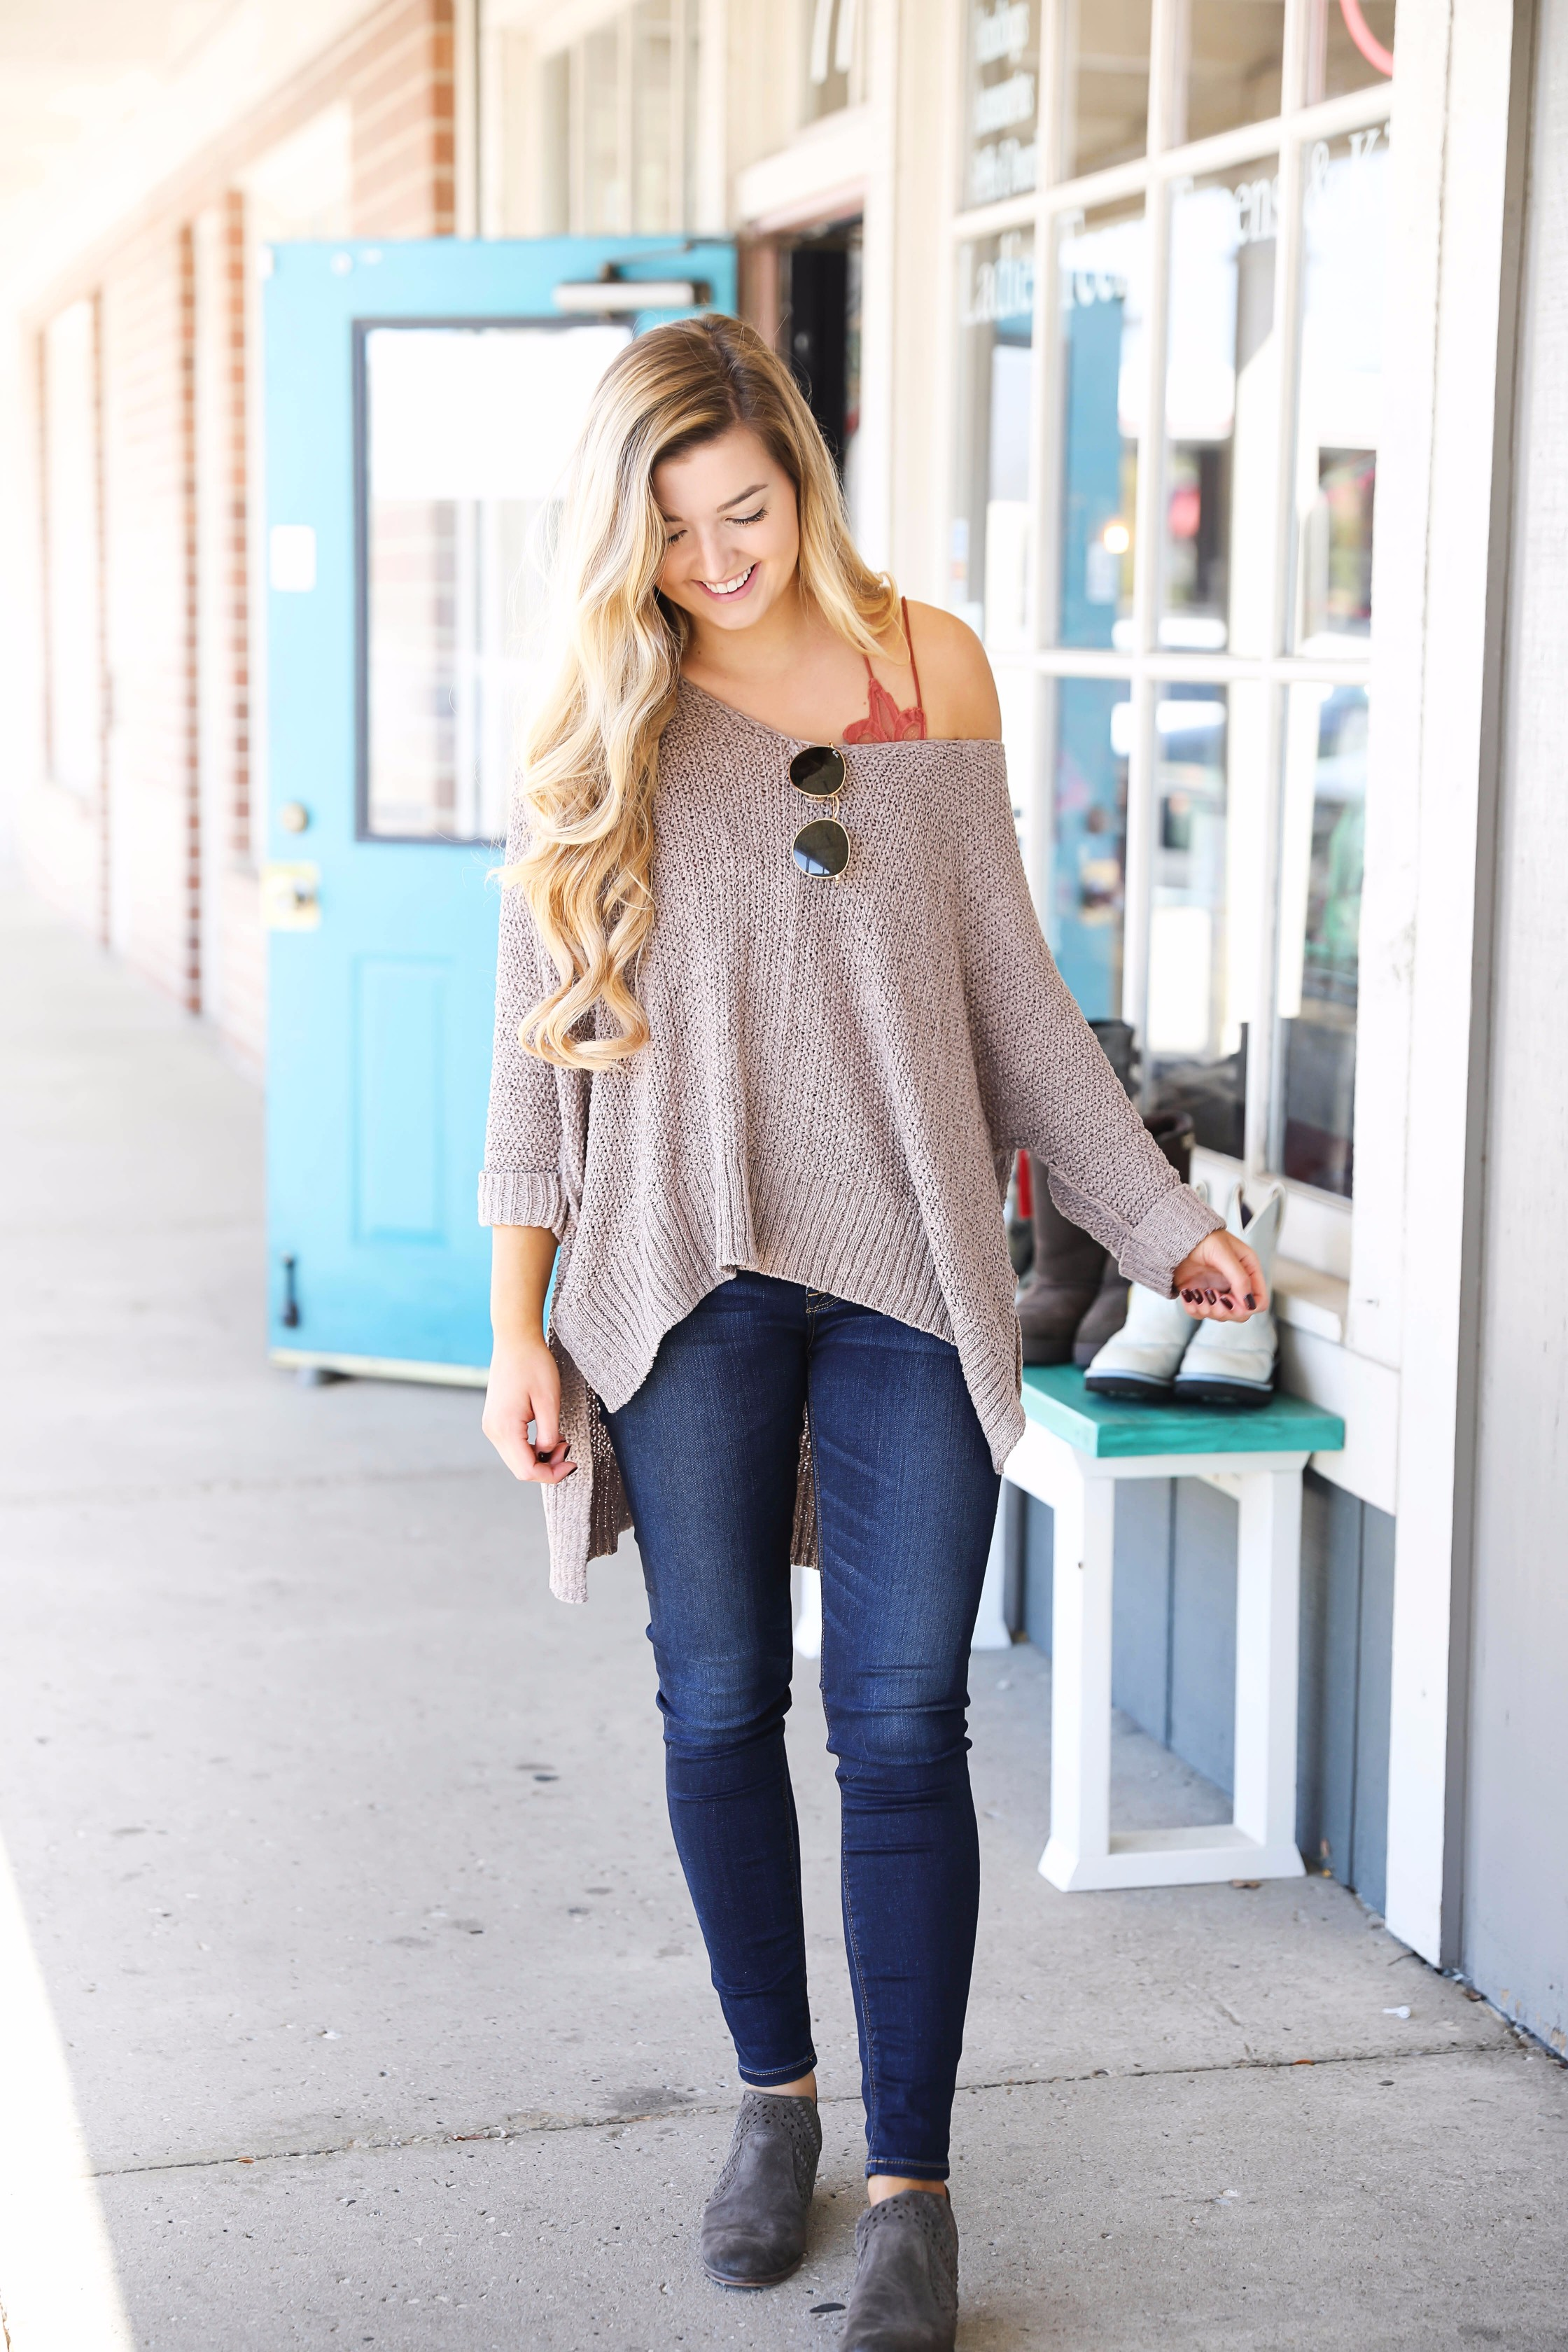 Slouchy off the shoulder sweater with a lace free people bralette! Super cute fall outfit for casual days or can be dressed up! Check out the details on fashion blog daily dose of charm by lauren lindmark